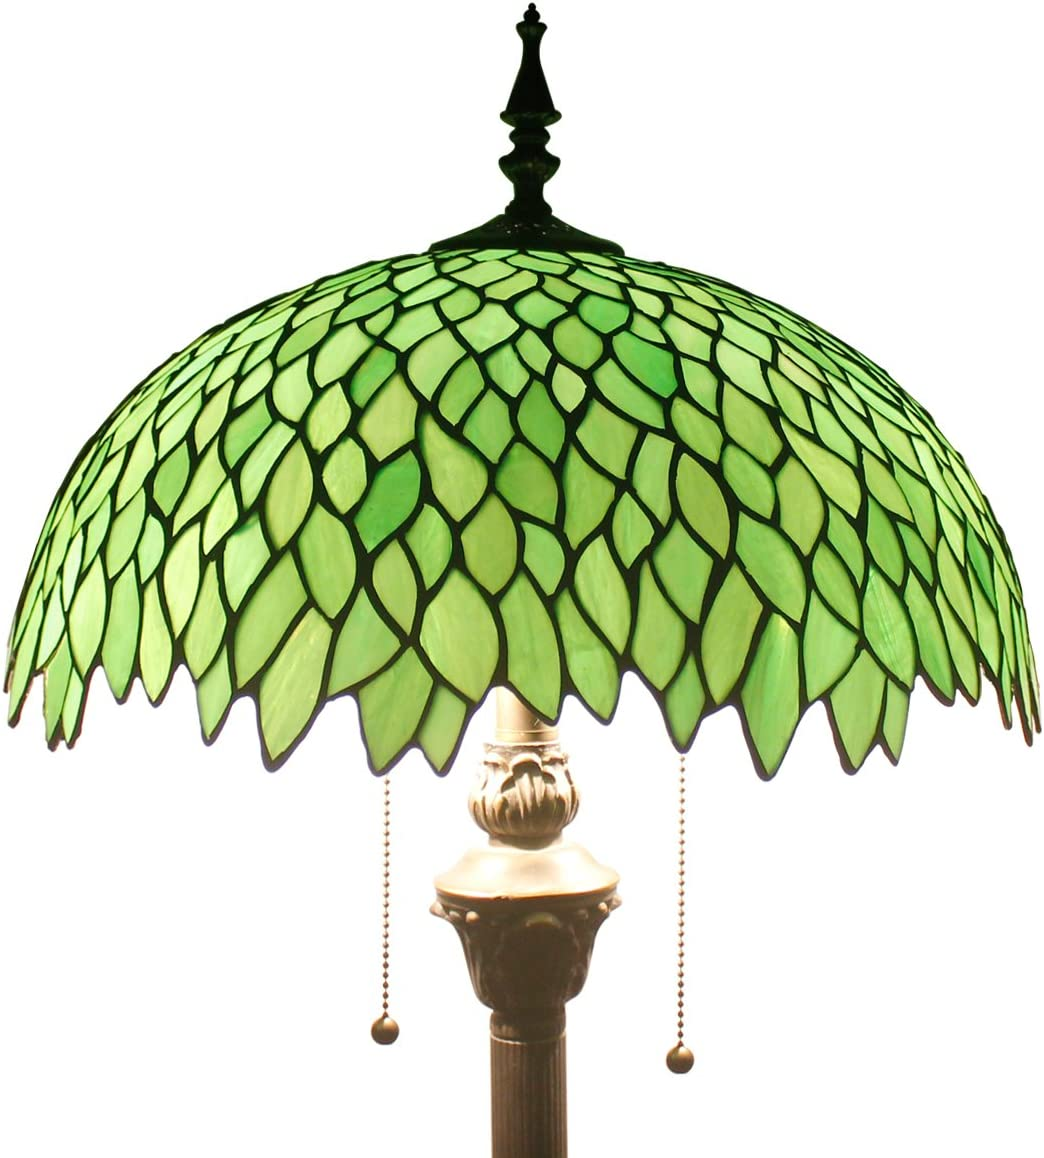 Green Wisteria Tiffany Style Floor Standing Lamp 64 Inch Tall Stained Glass Shade 2 Light Pull Chain Antique Base Chain for Bedroom Living Room Lighting Table S523 WERFACTORY